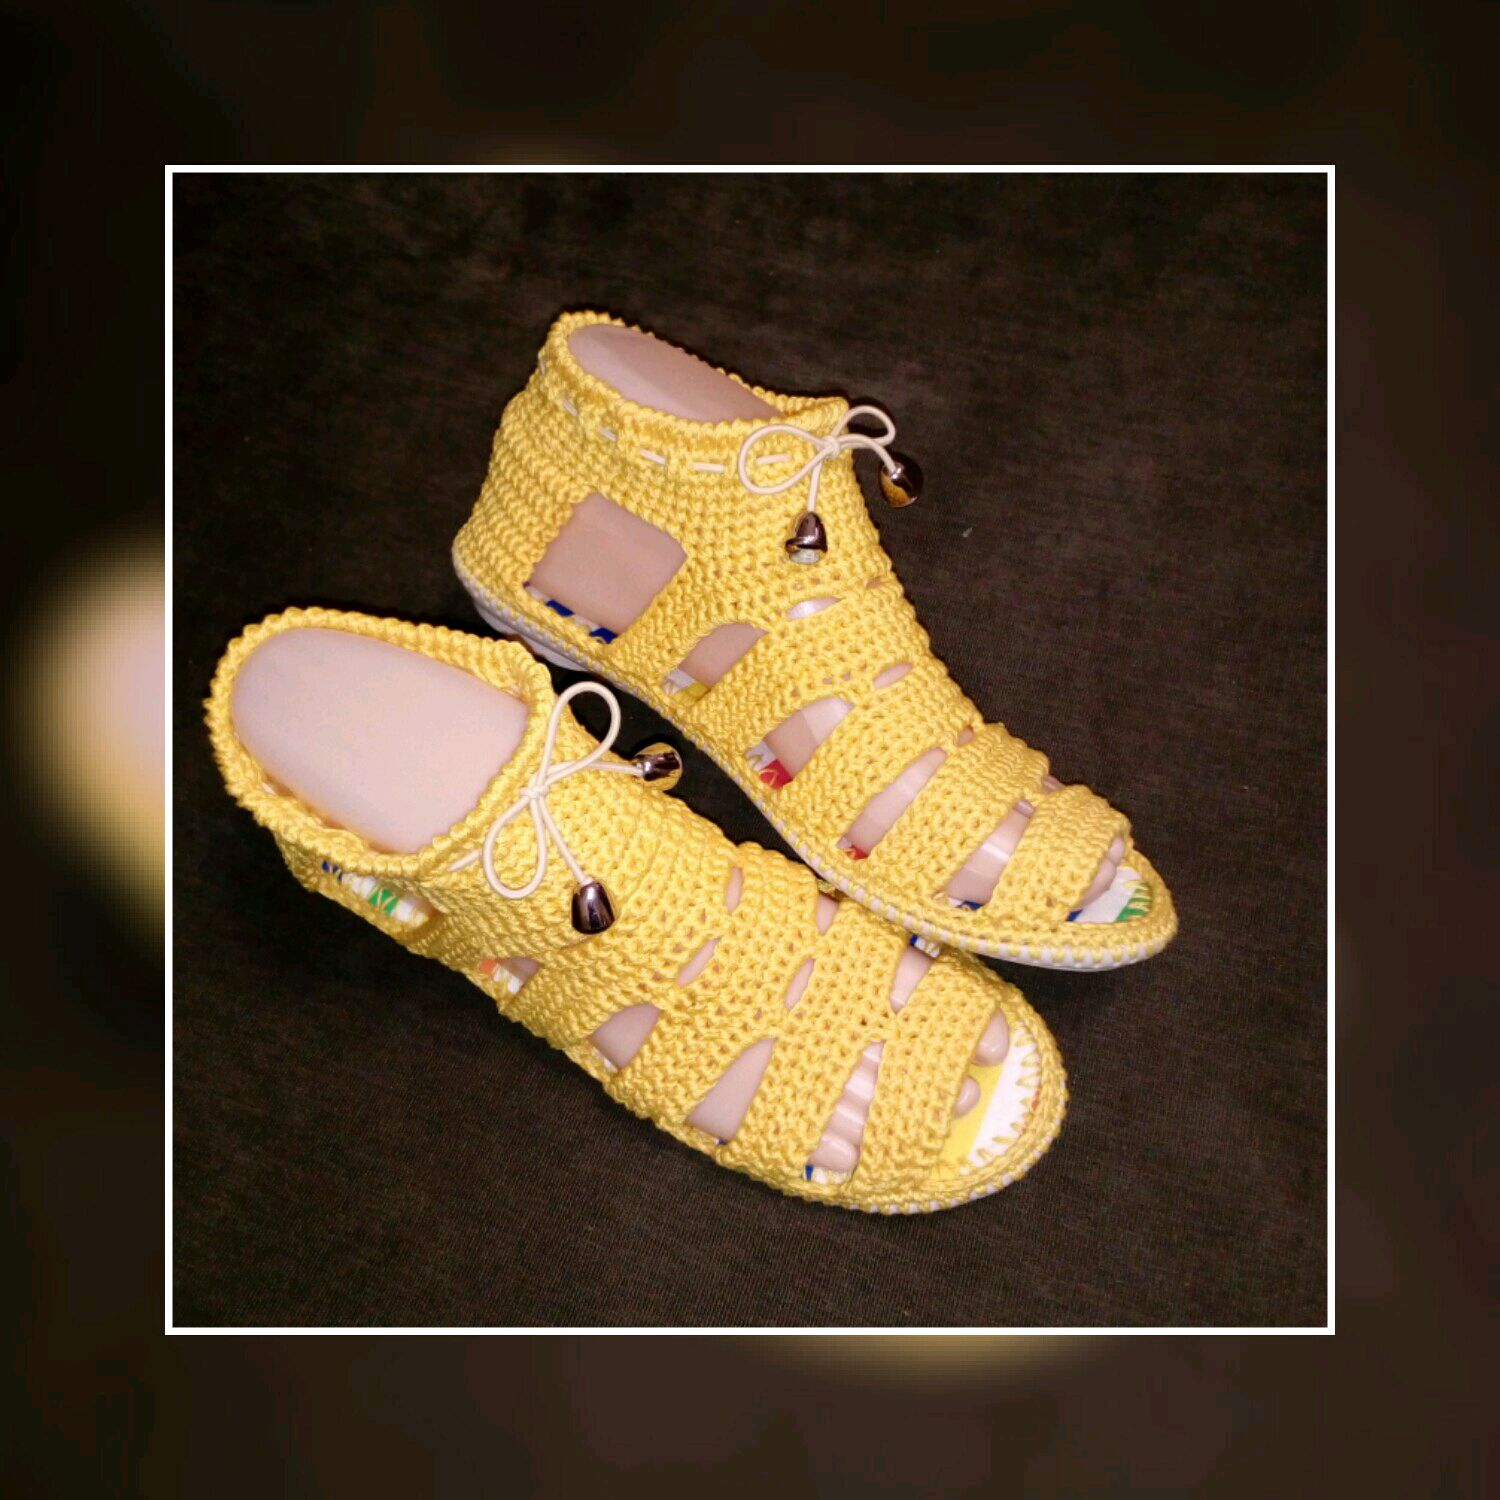 shoes, sandals, shoes, handmade shoes, boots, ballet flats, crochet, sleepers, crochet, gift, fashion, summer, knitting to order, women's boots, moccasins, shoes, handmade, sea, knitted